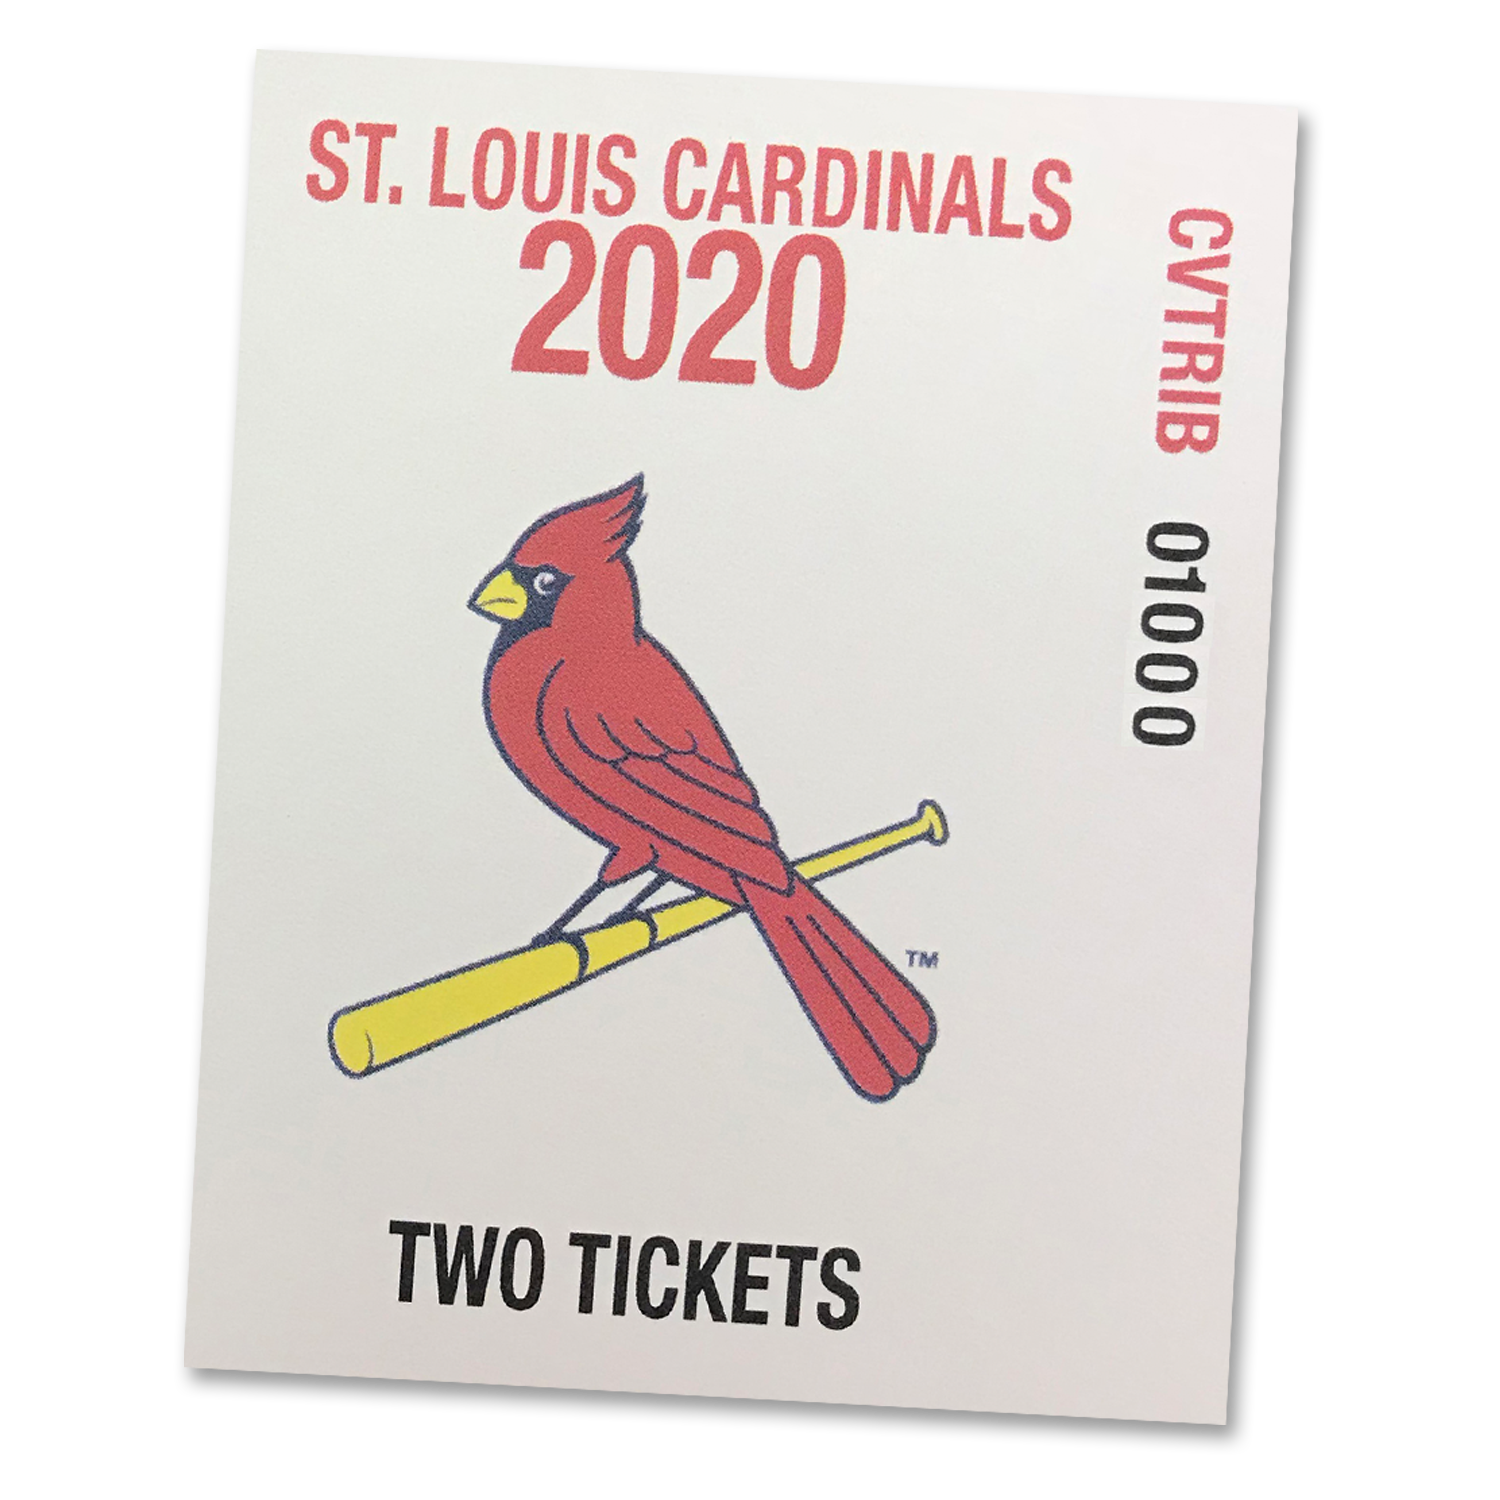 3887d7f86a7e2 ... on August 29 will get a head start on their 2020 baseball adventures  with a Ticket-for-Two voucher to a 2020 St. Louis Cardinals game at Busch  Stadium!